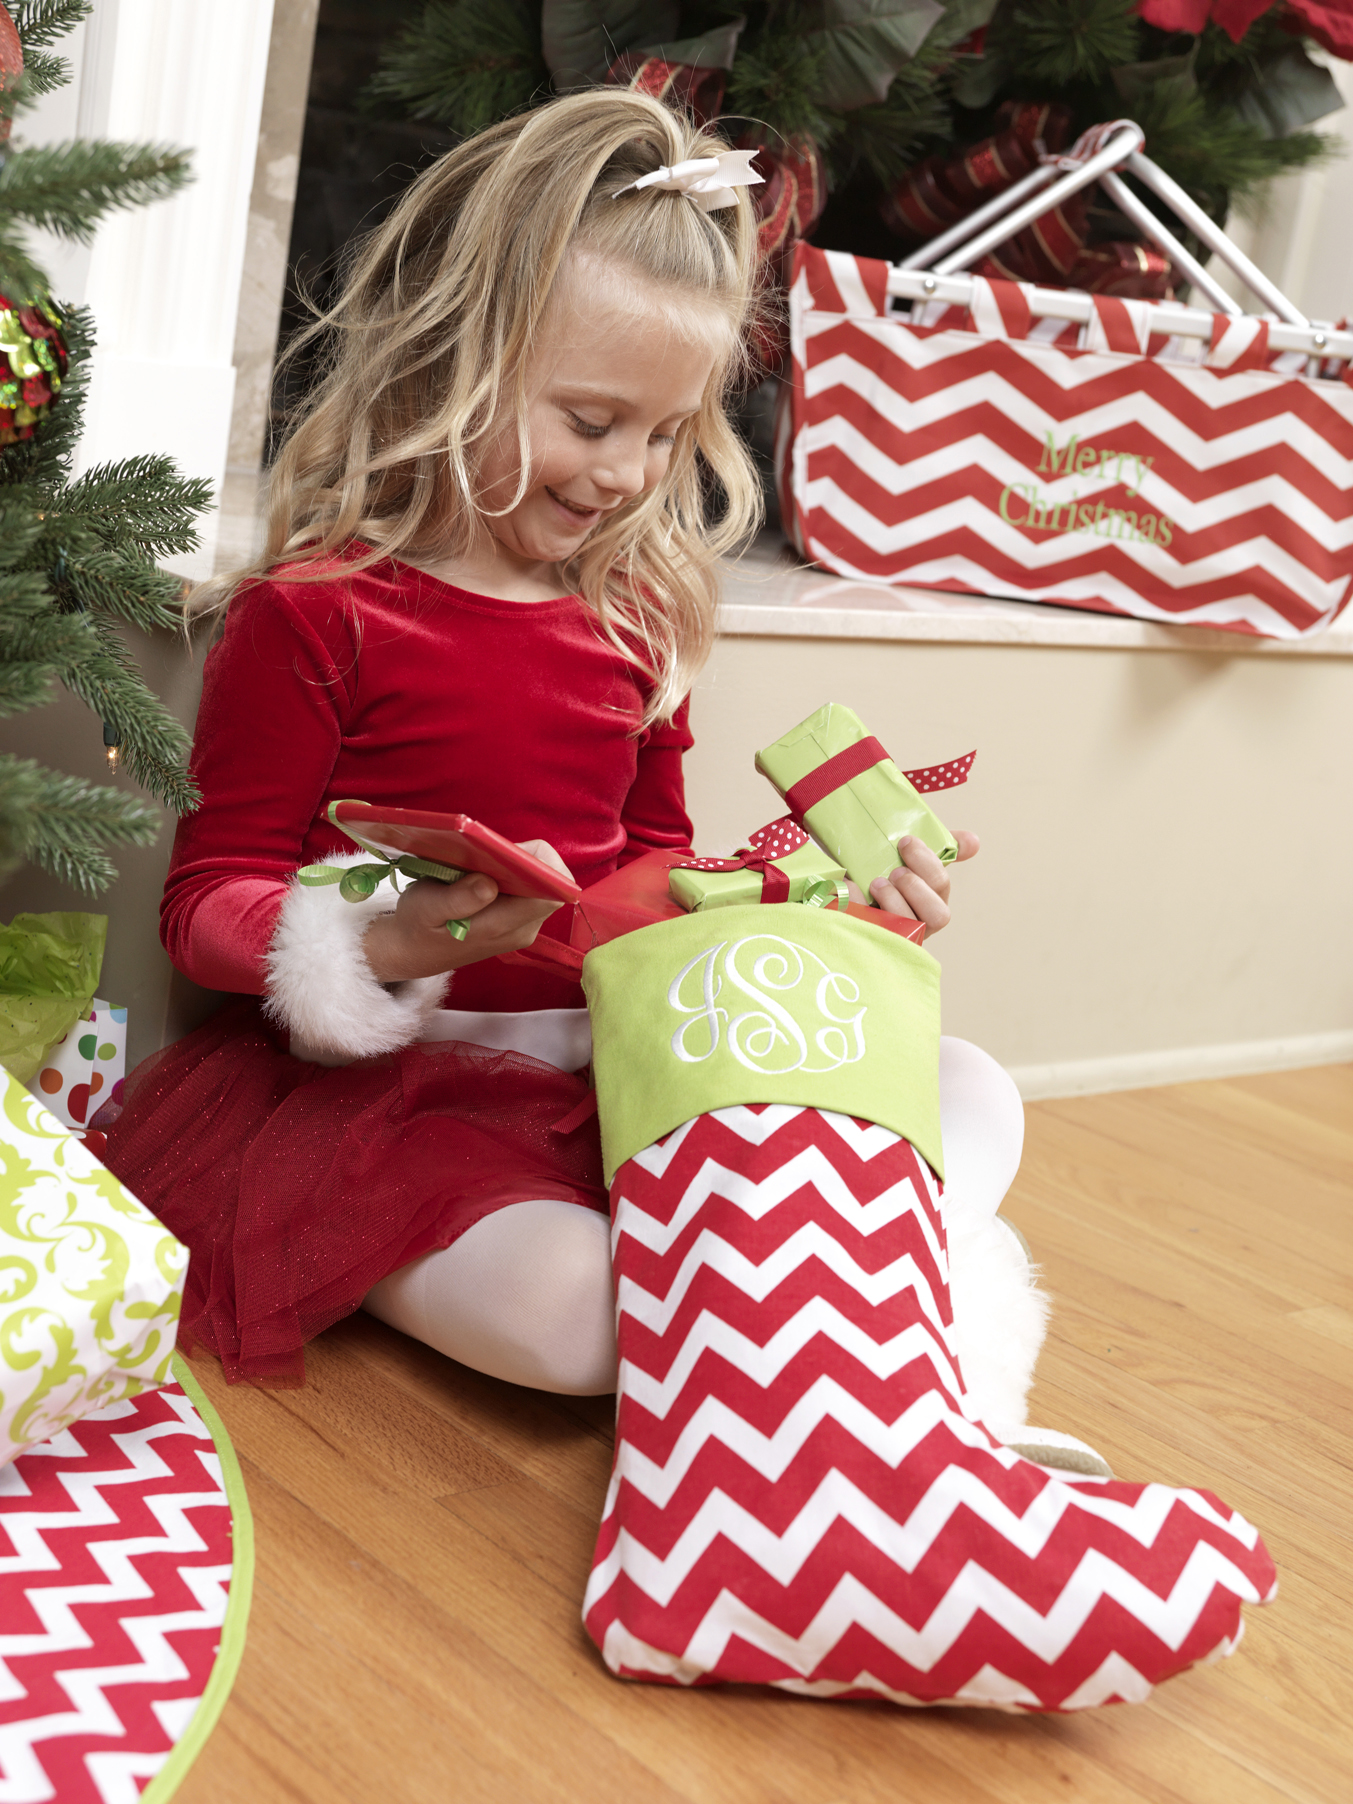 http://sassybysacha.storenvy.com/collections/347319-holidays/products/2904522-chevron-stocking